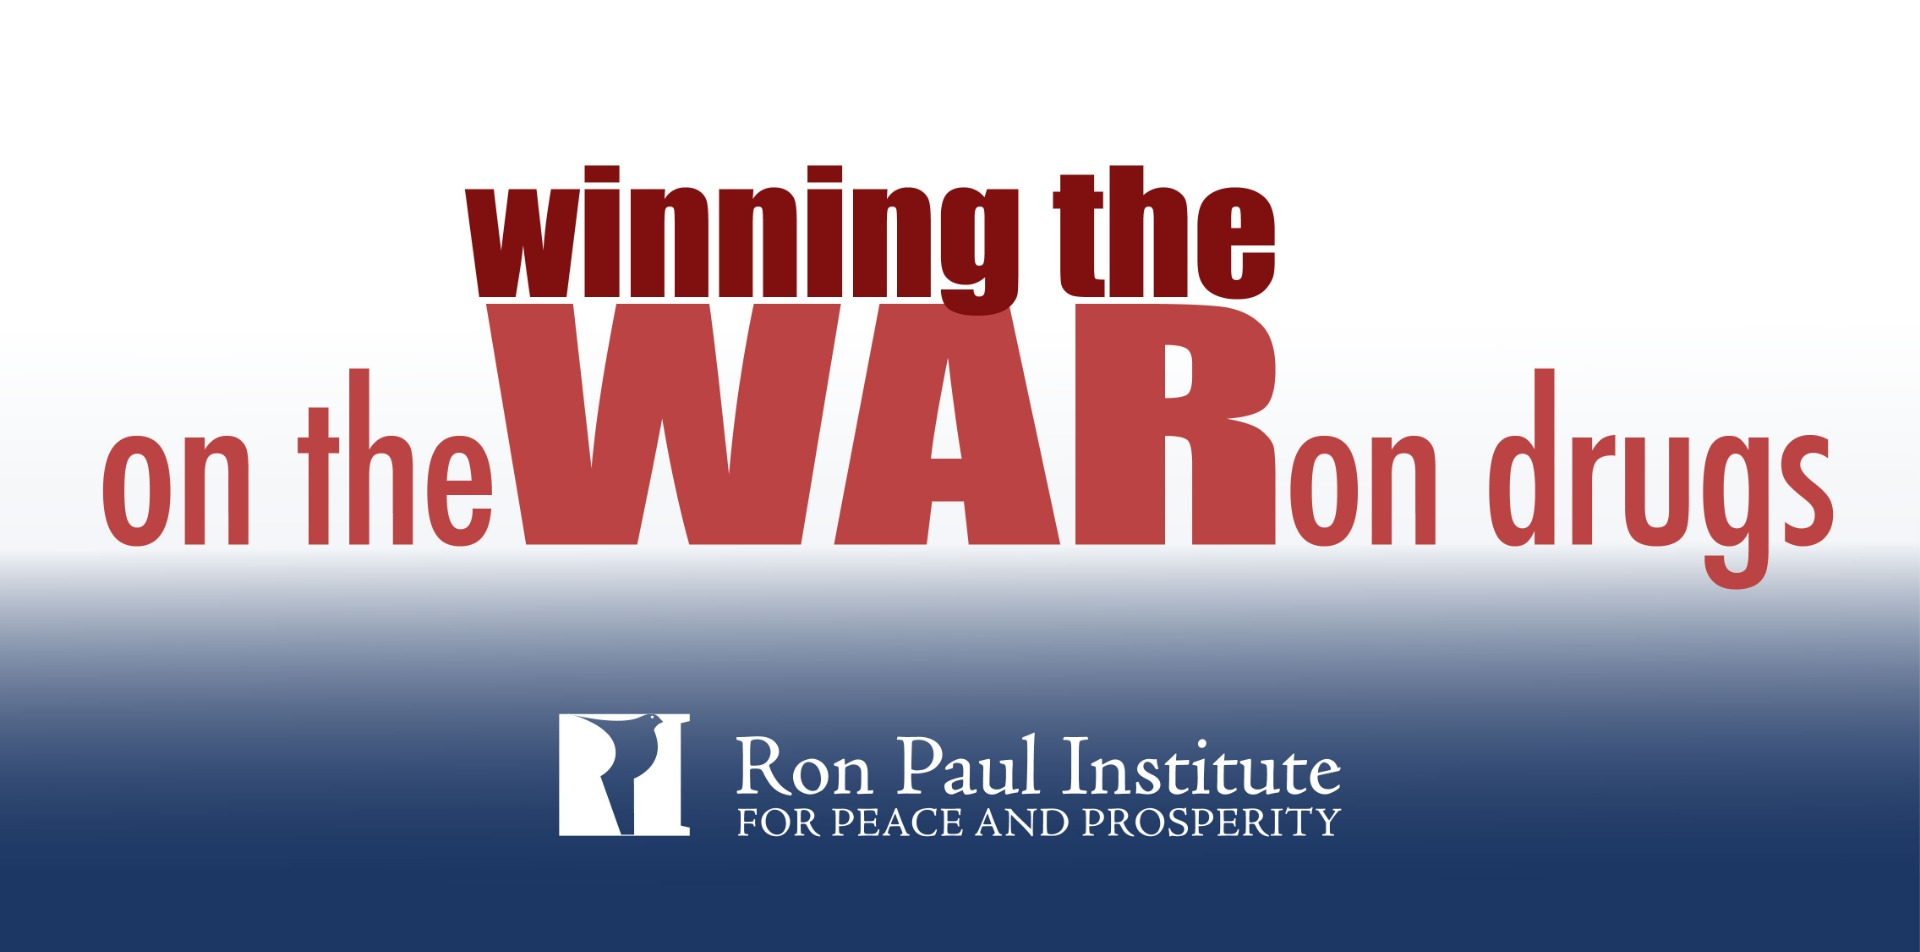 e783082ebcb5 The Ron Paul Institute for Peace and Prosperity   Winning the War on the  War on Drugs - RPI Houston Conference!